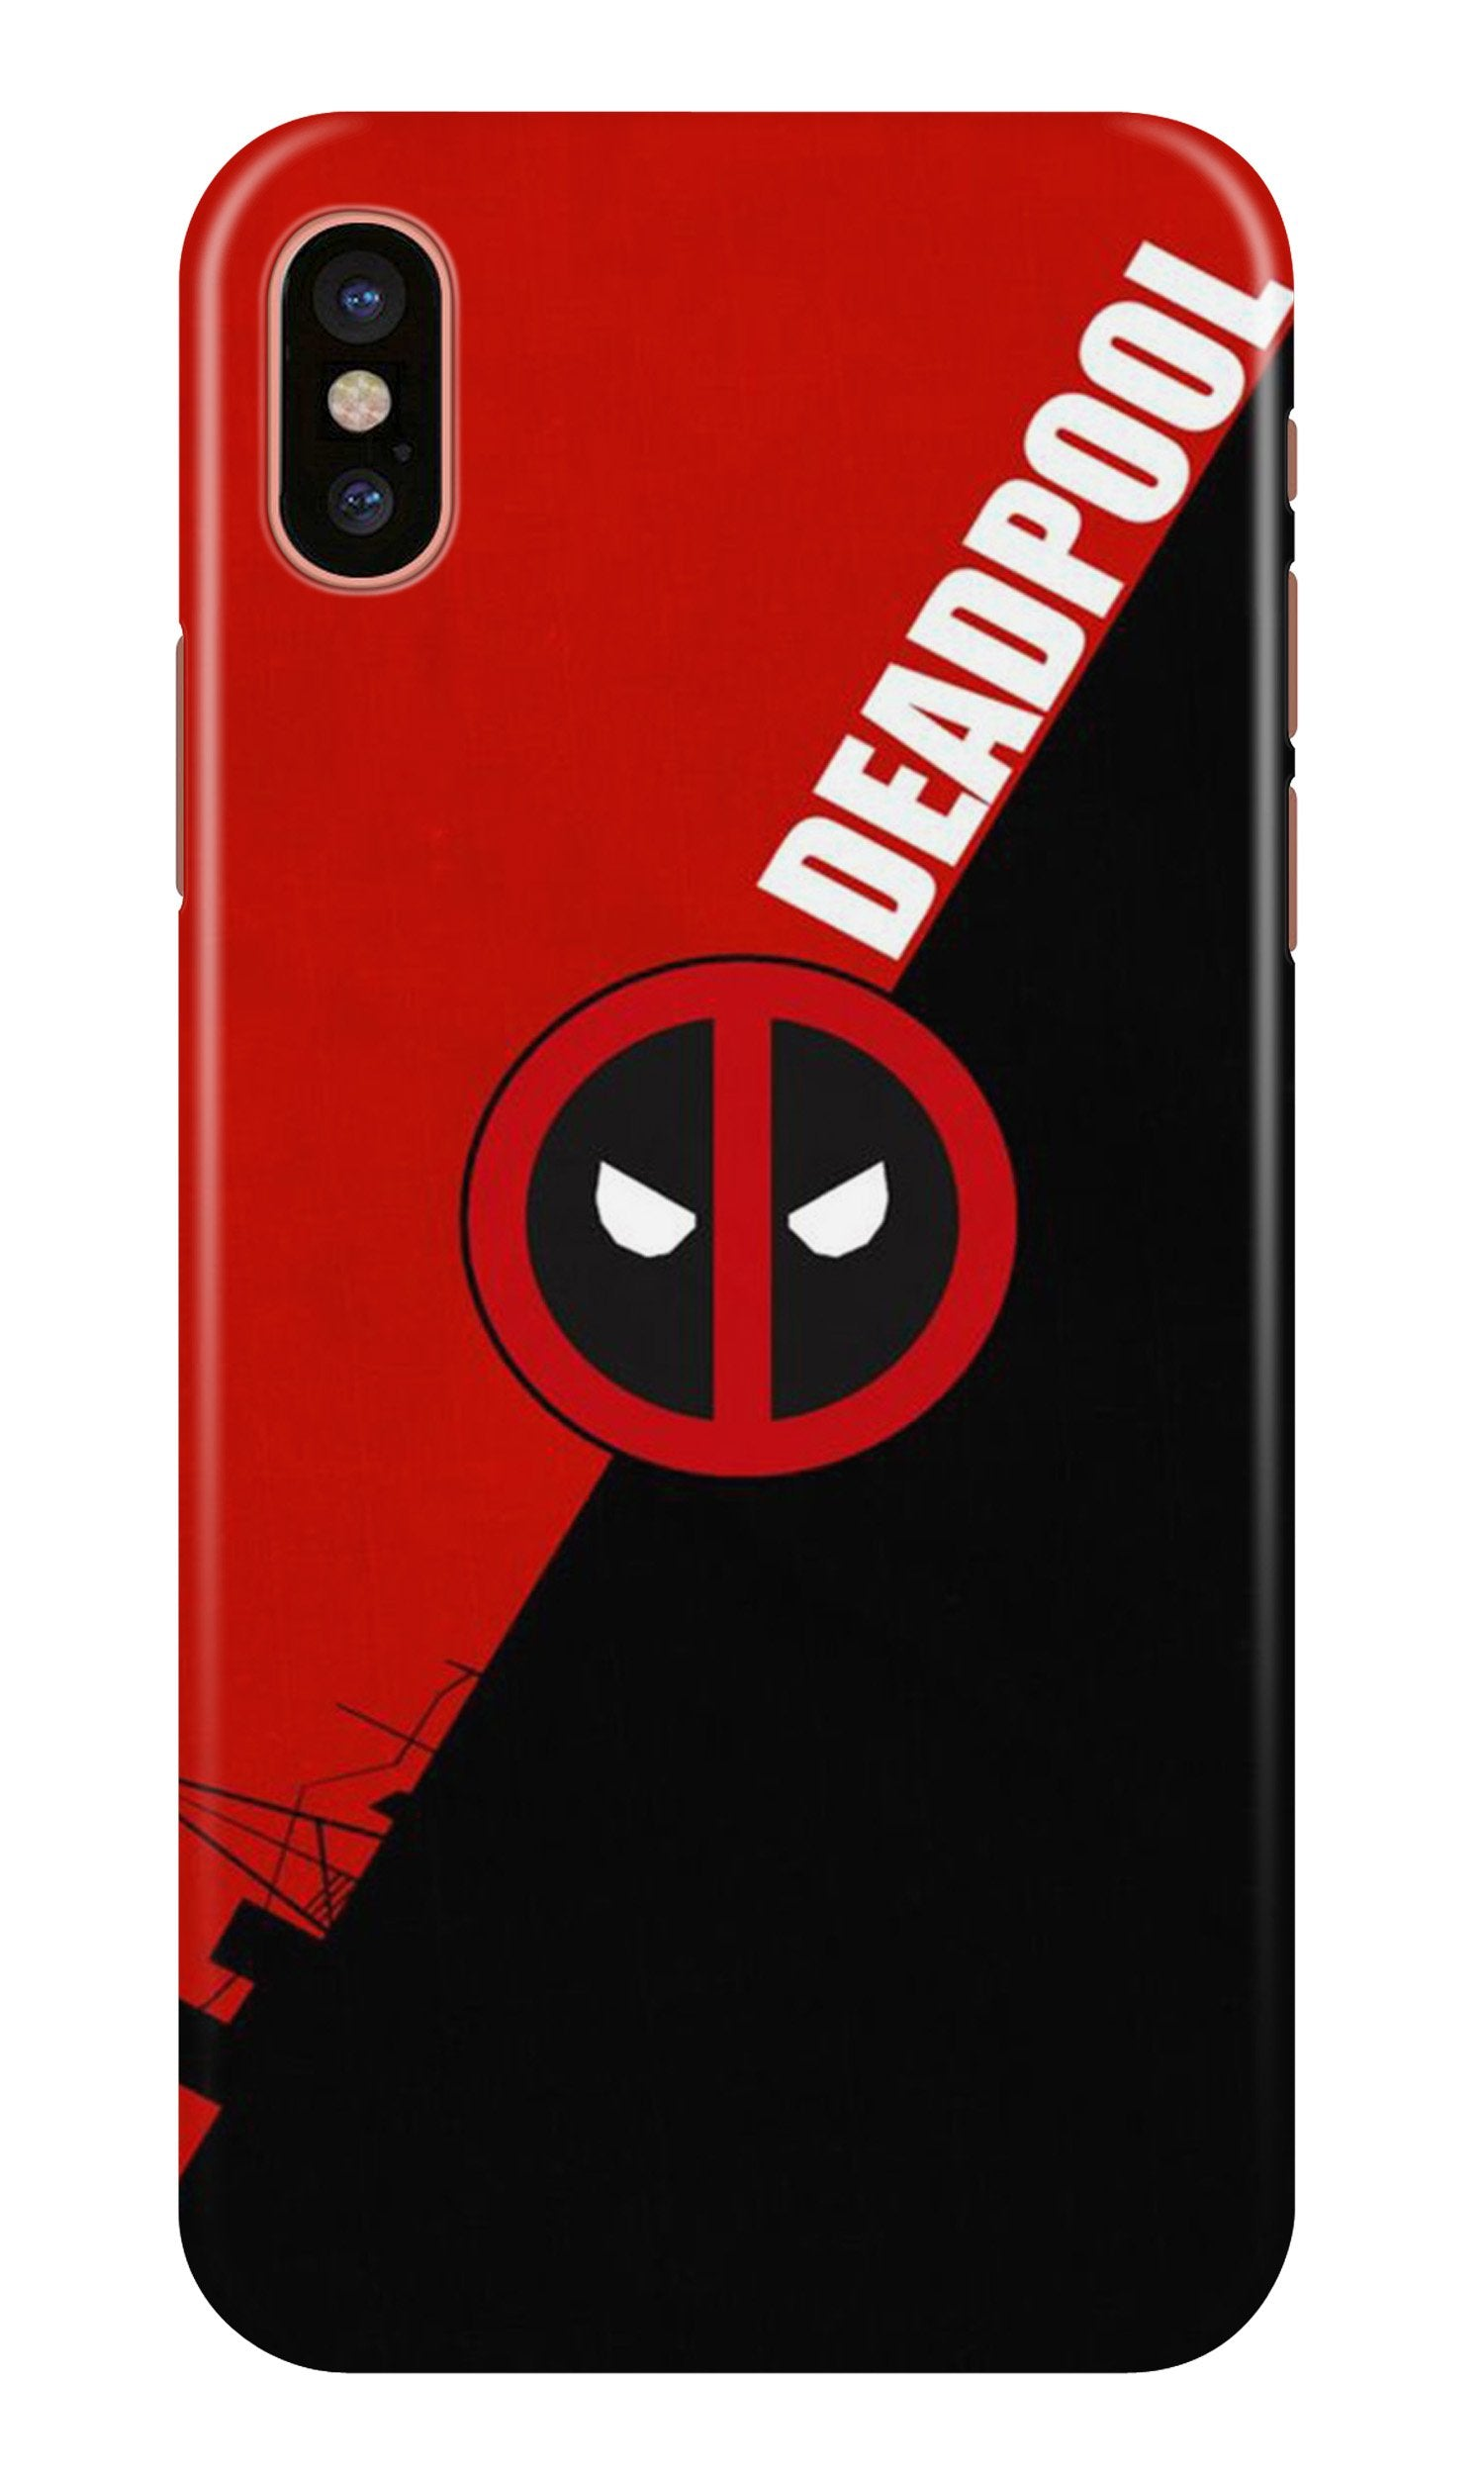 Deadpool Case for iPhone Xr (Design No. 248)